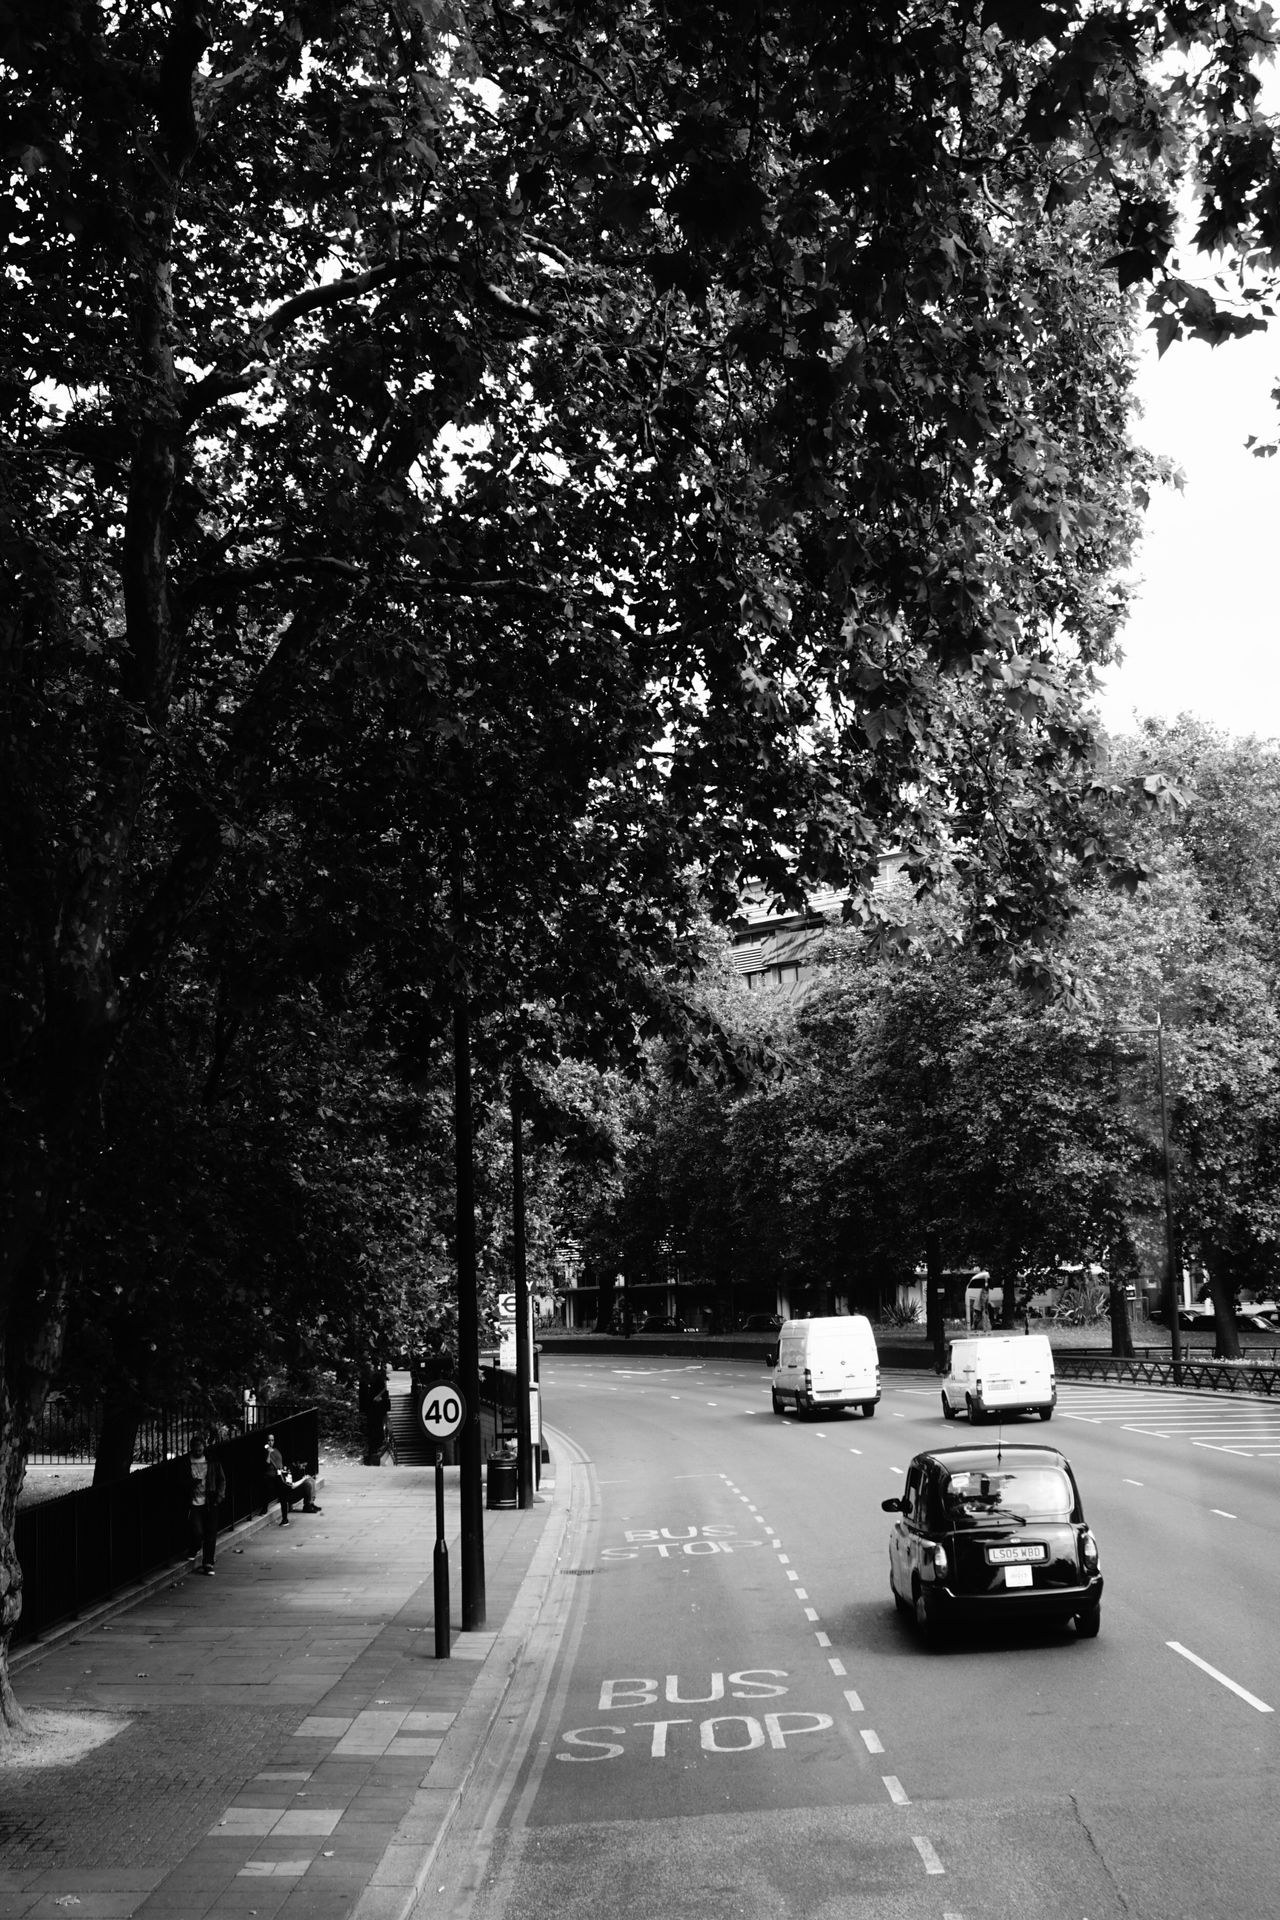 Travelling in London. View From Bus Window from double decker bus London Blackcab London Cab Bus Lane Trees Black And White Black & White Cars City Life City Street City Of London City View  Bus View England, UK